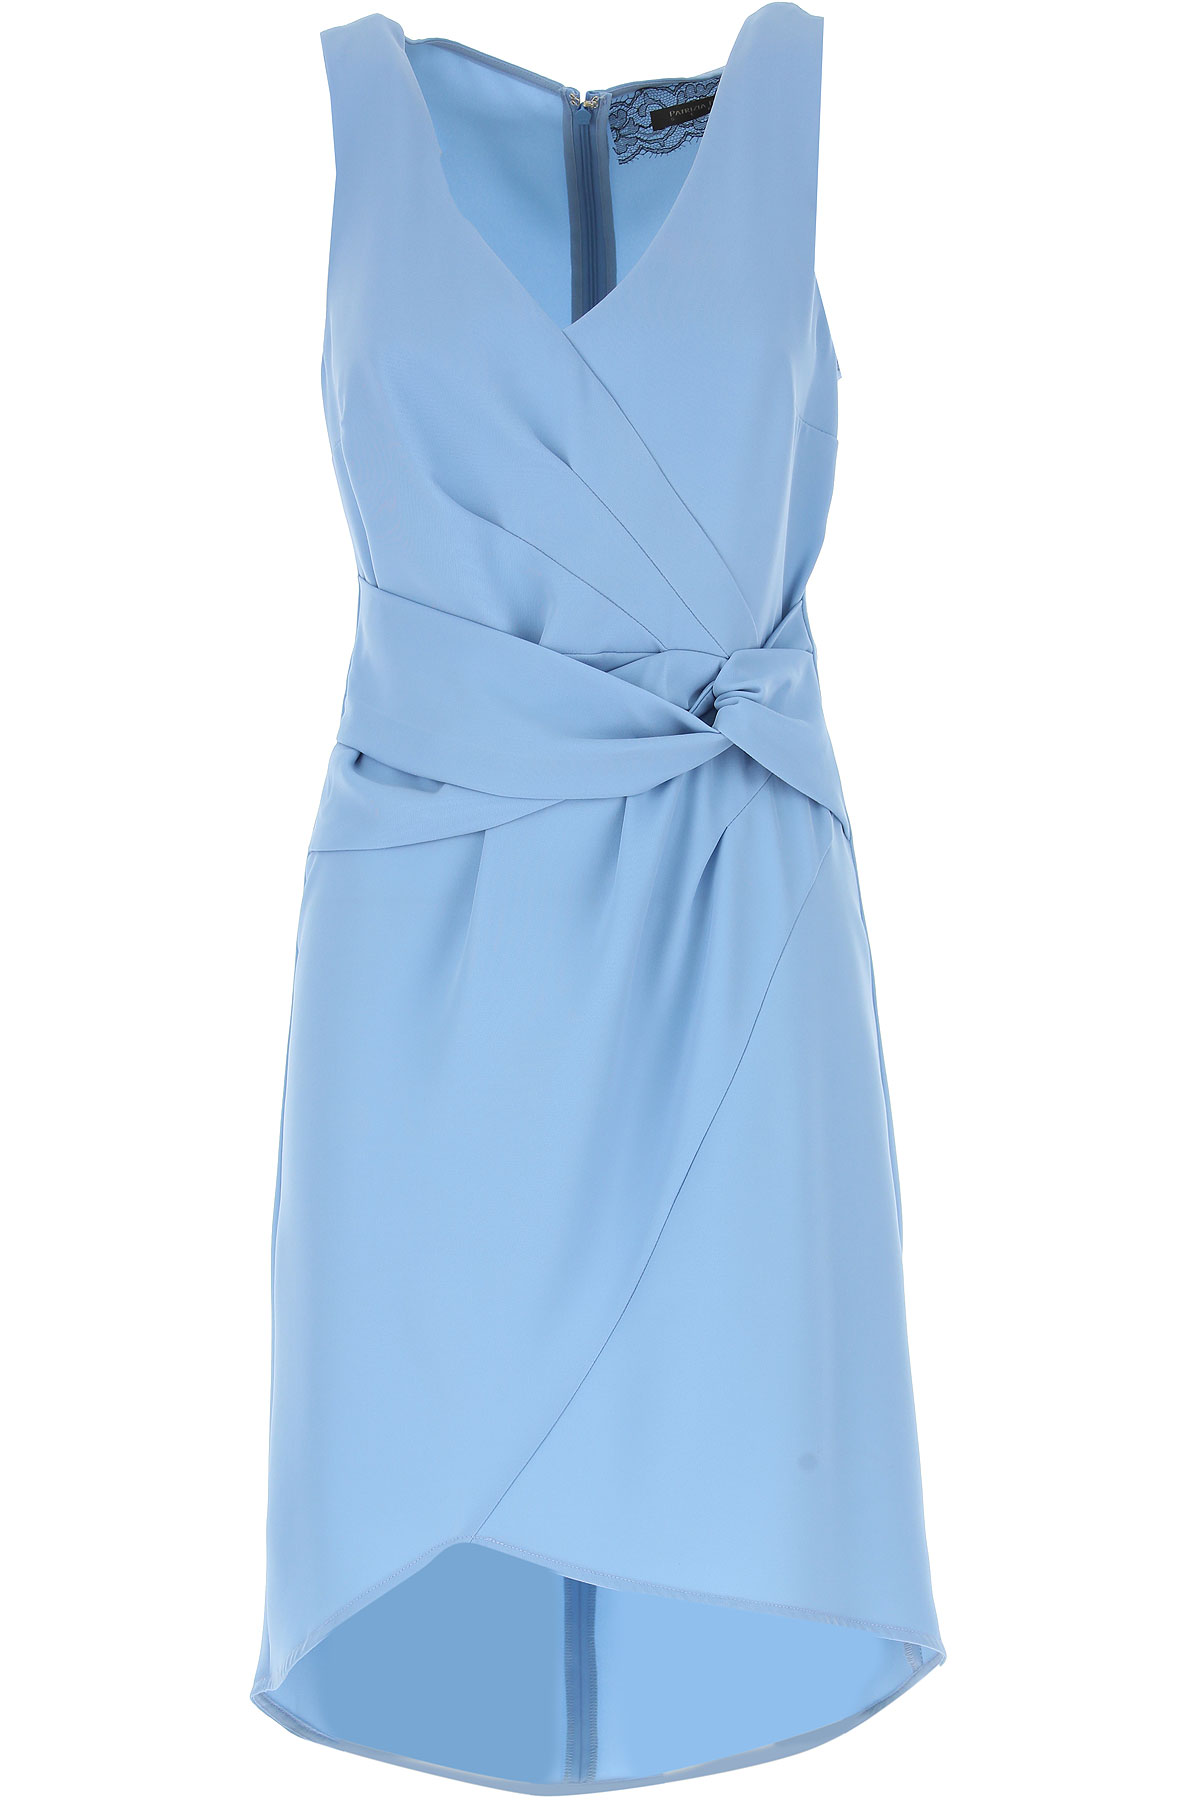 Patrizia Pepe Dress for Women, Evening Cocktail Party On Sale in Outlet, Cosmic Blue, polyester, 2019, 10 4